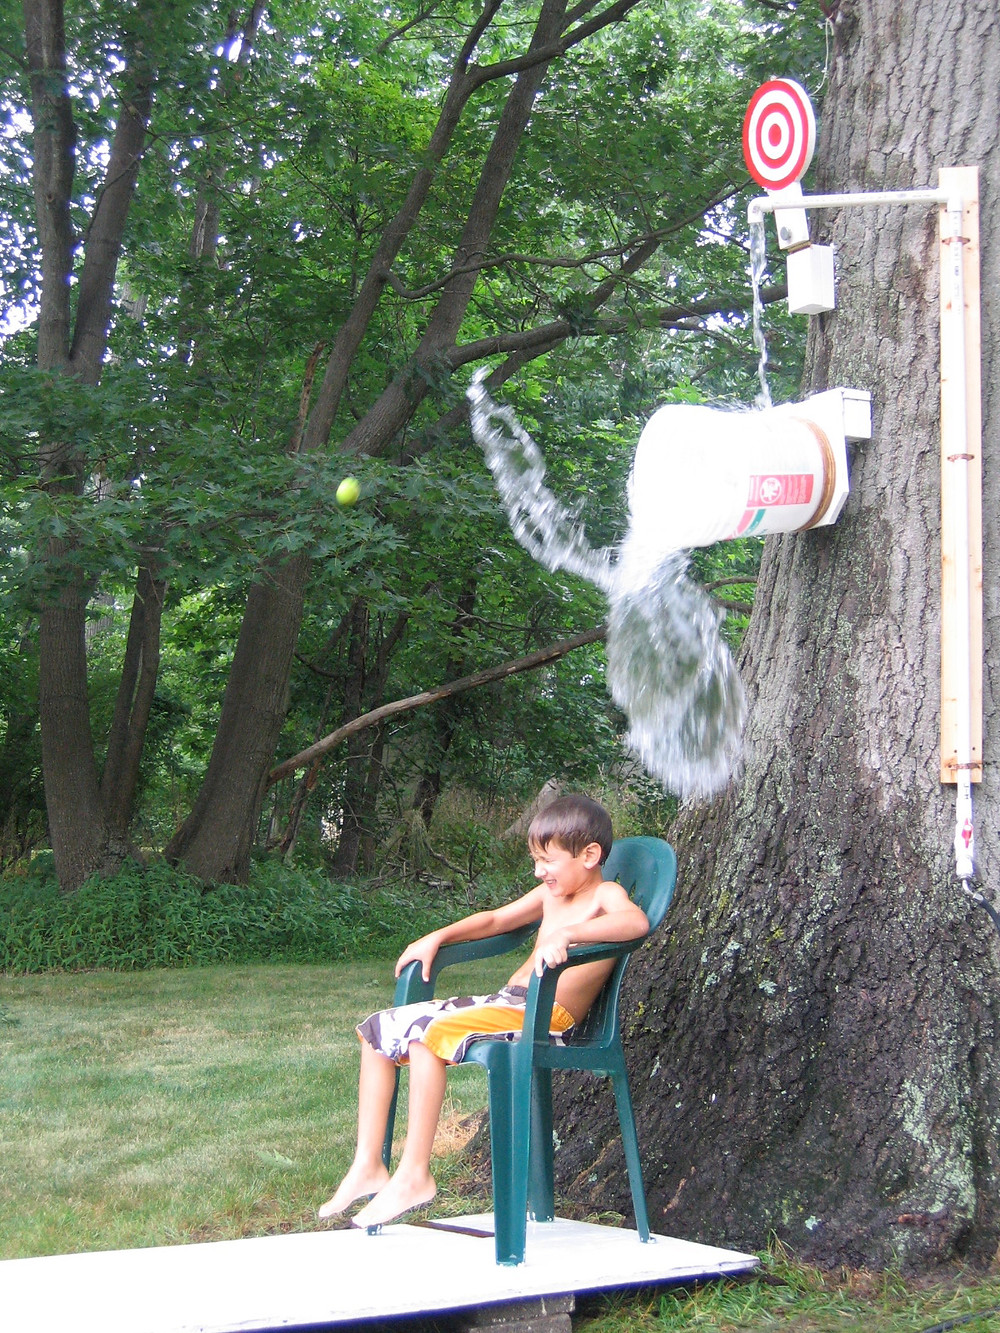 Homemade water dunk tank